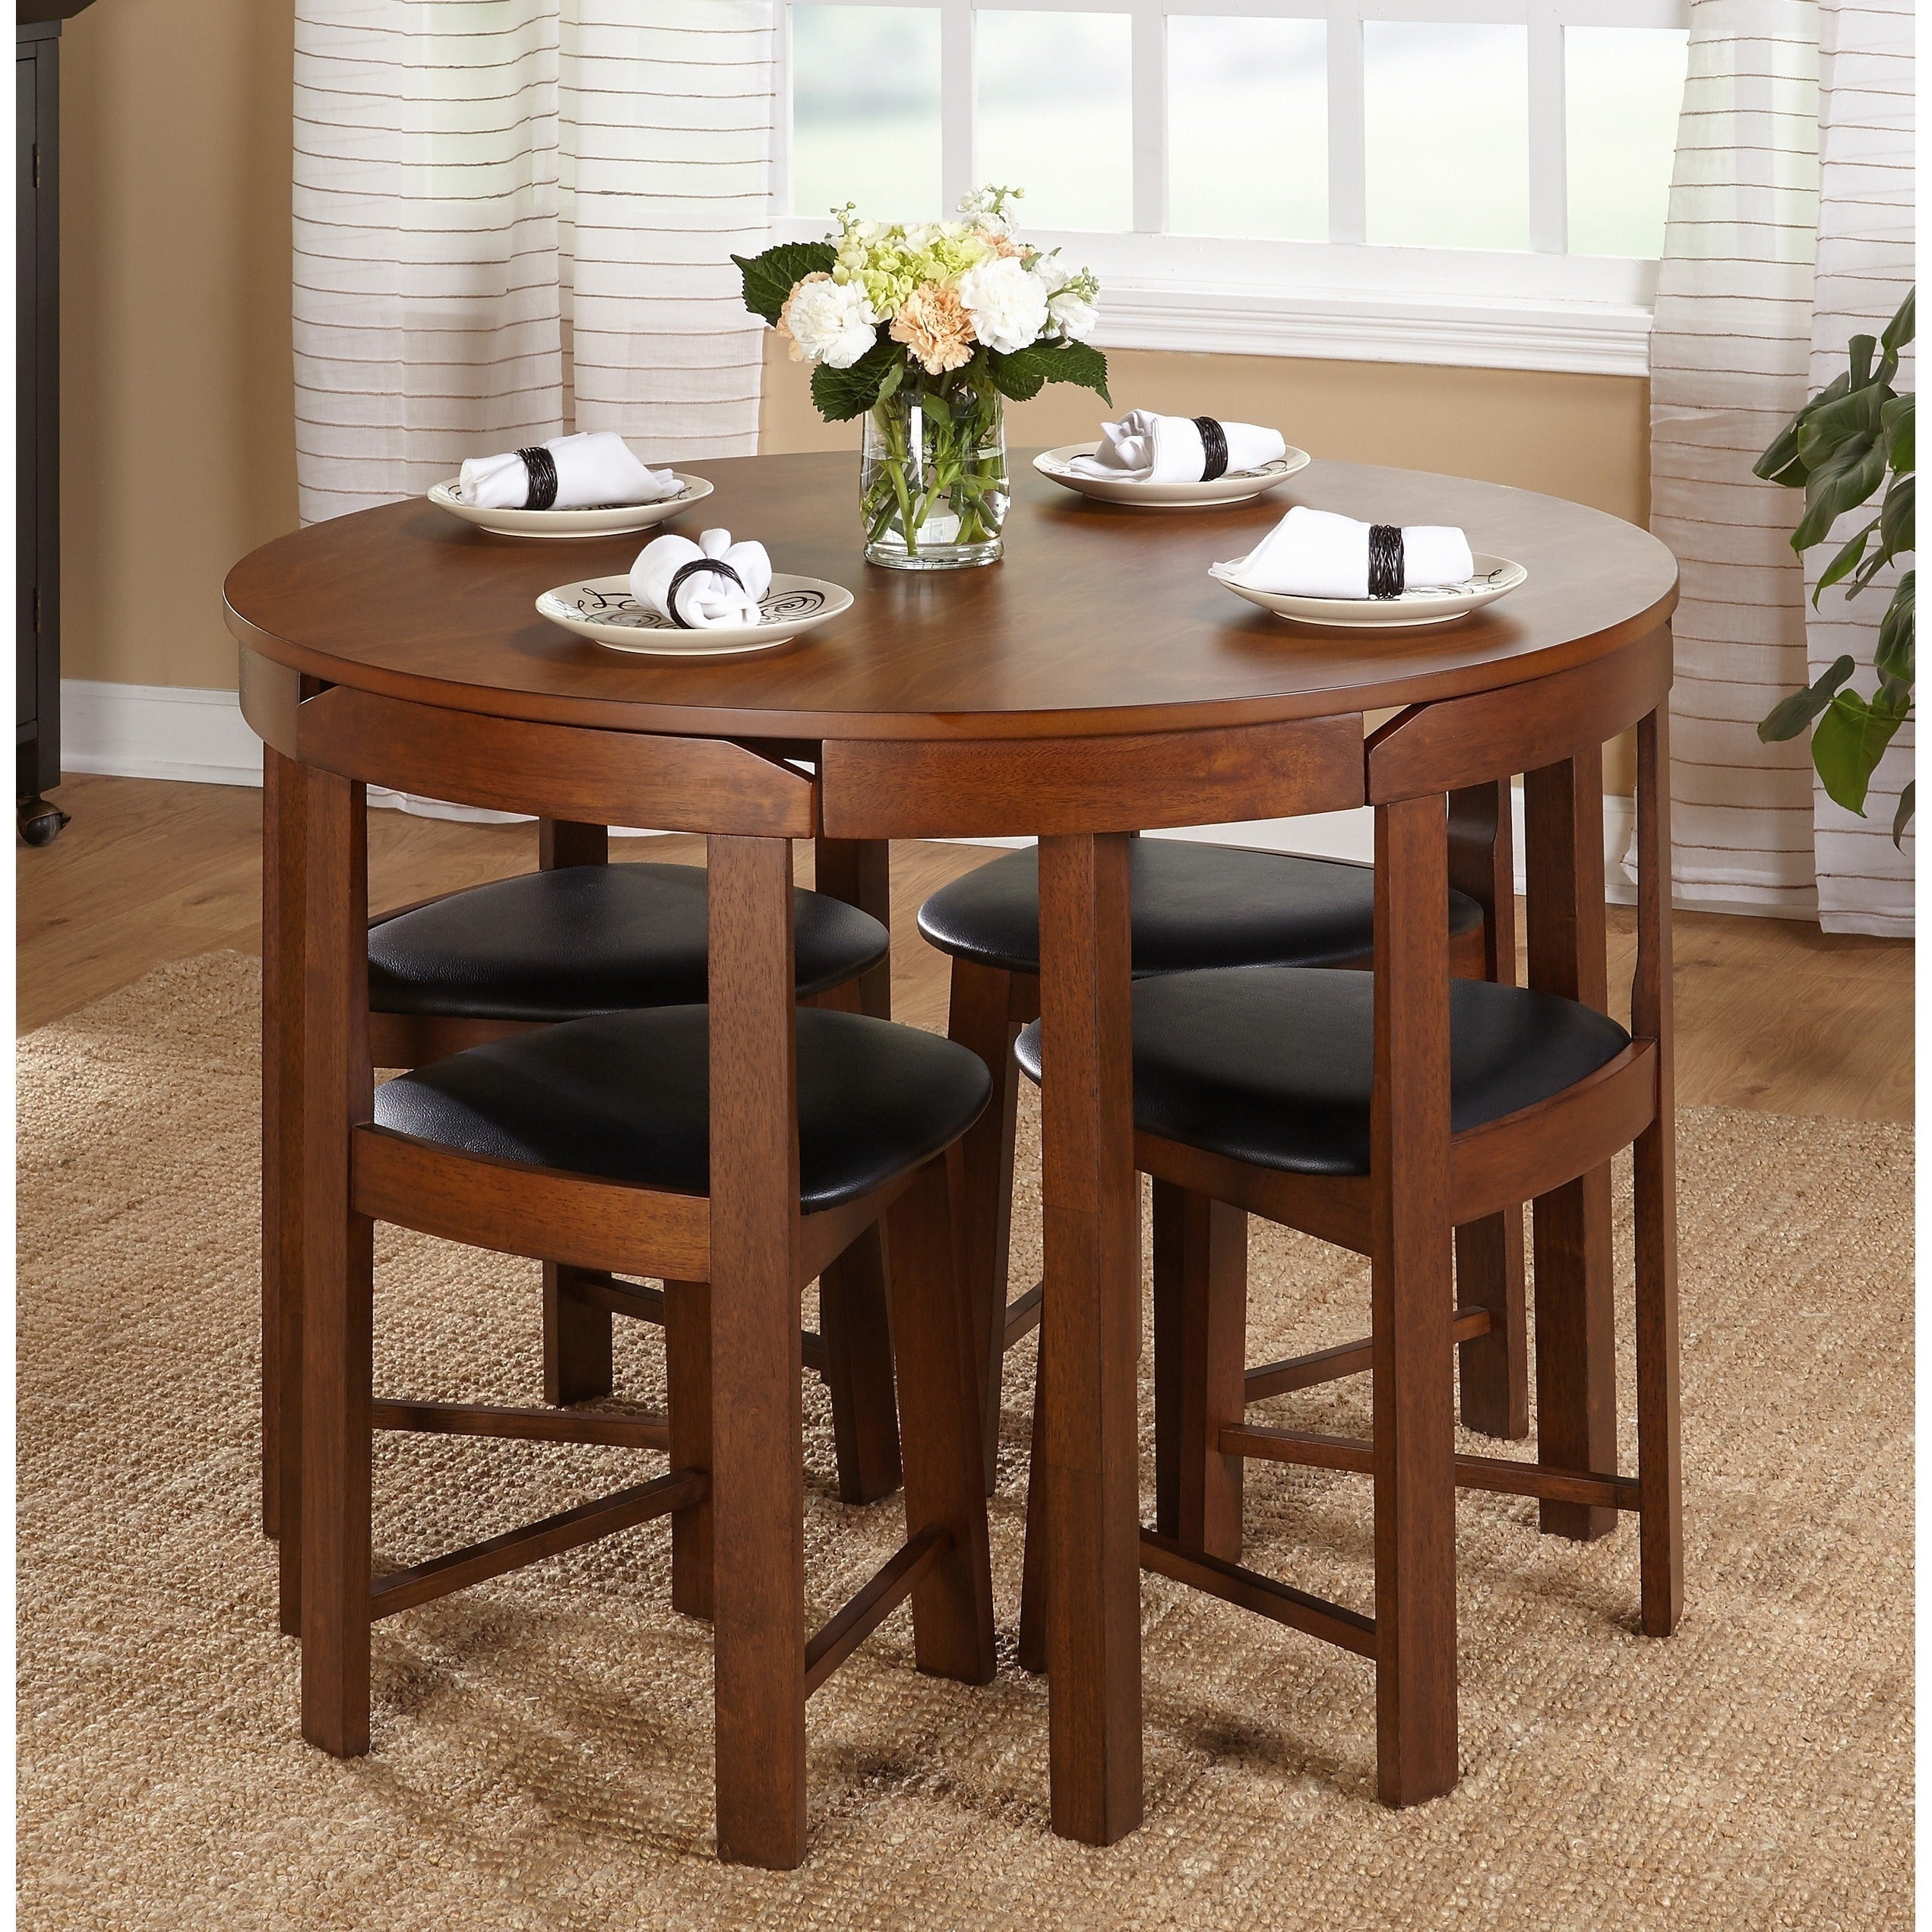 cdc9b6ce7c68 Buy Kitchen & Dining Room Sets Online at Overstock | Our Best Dining Room &  Bar Furniture Deals